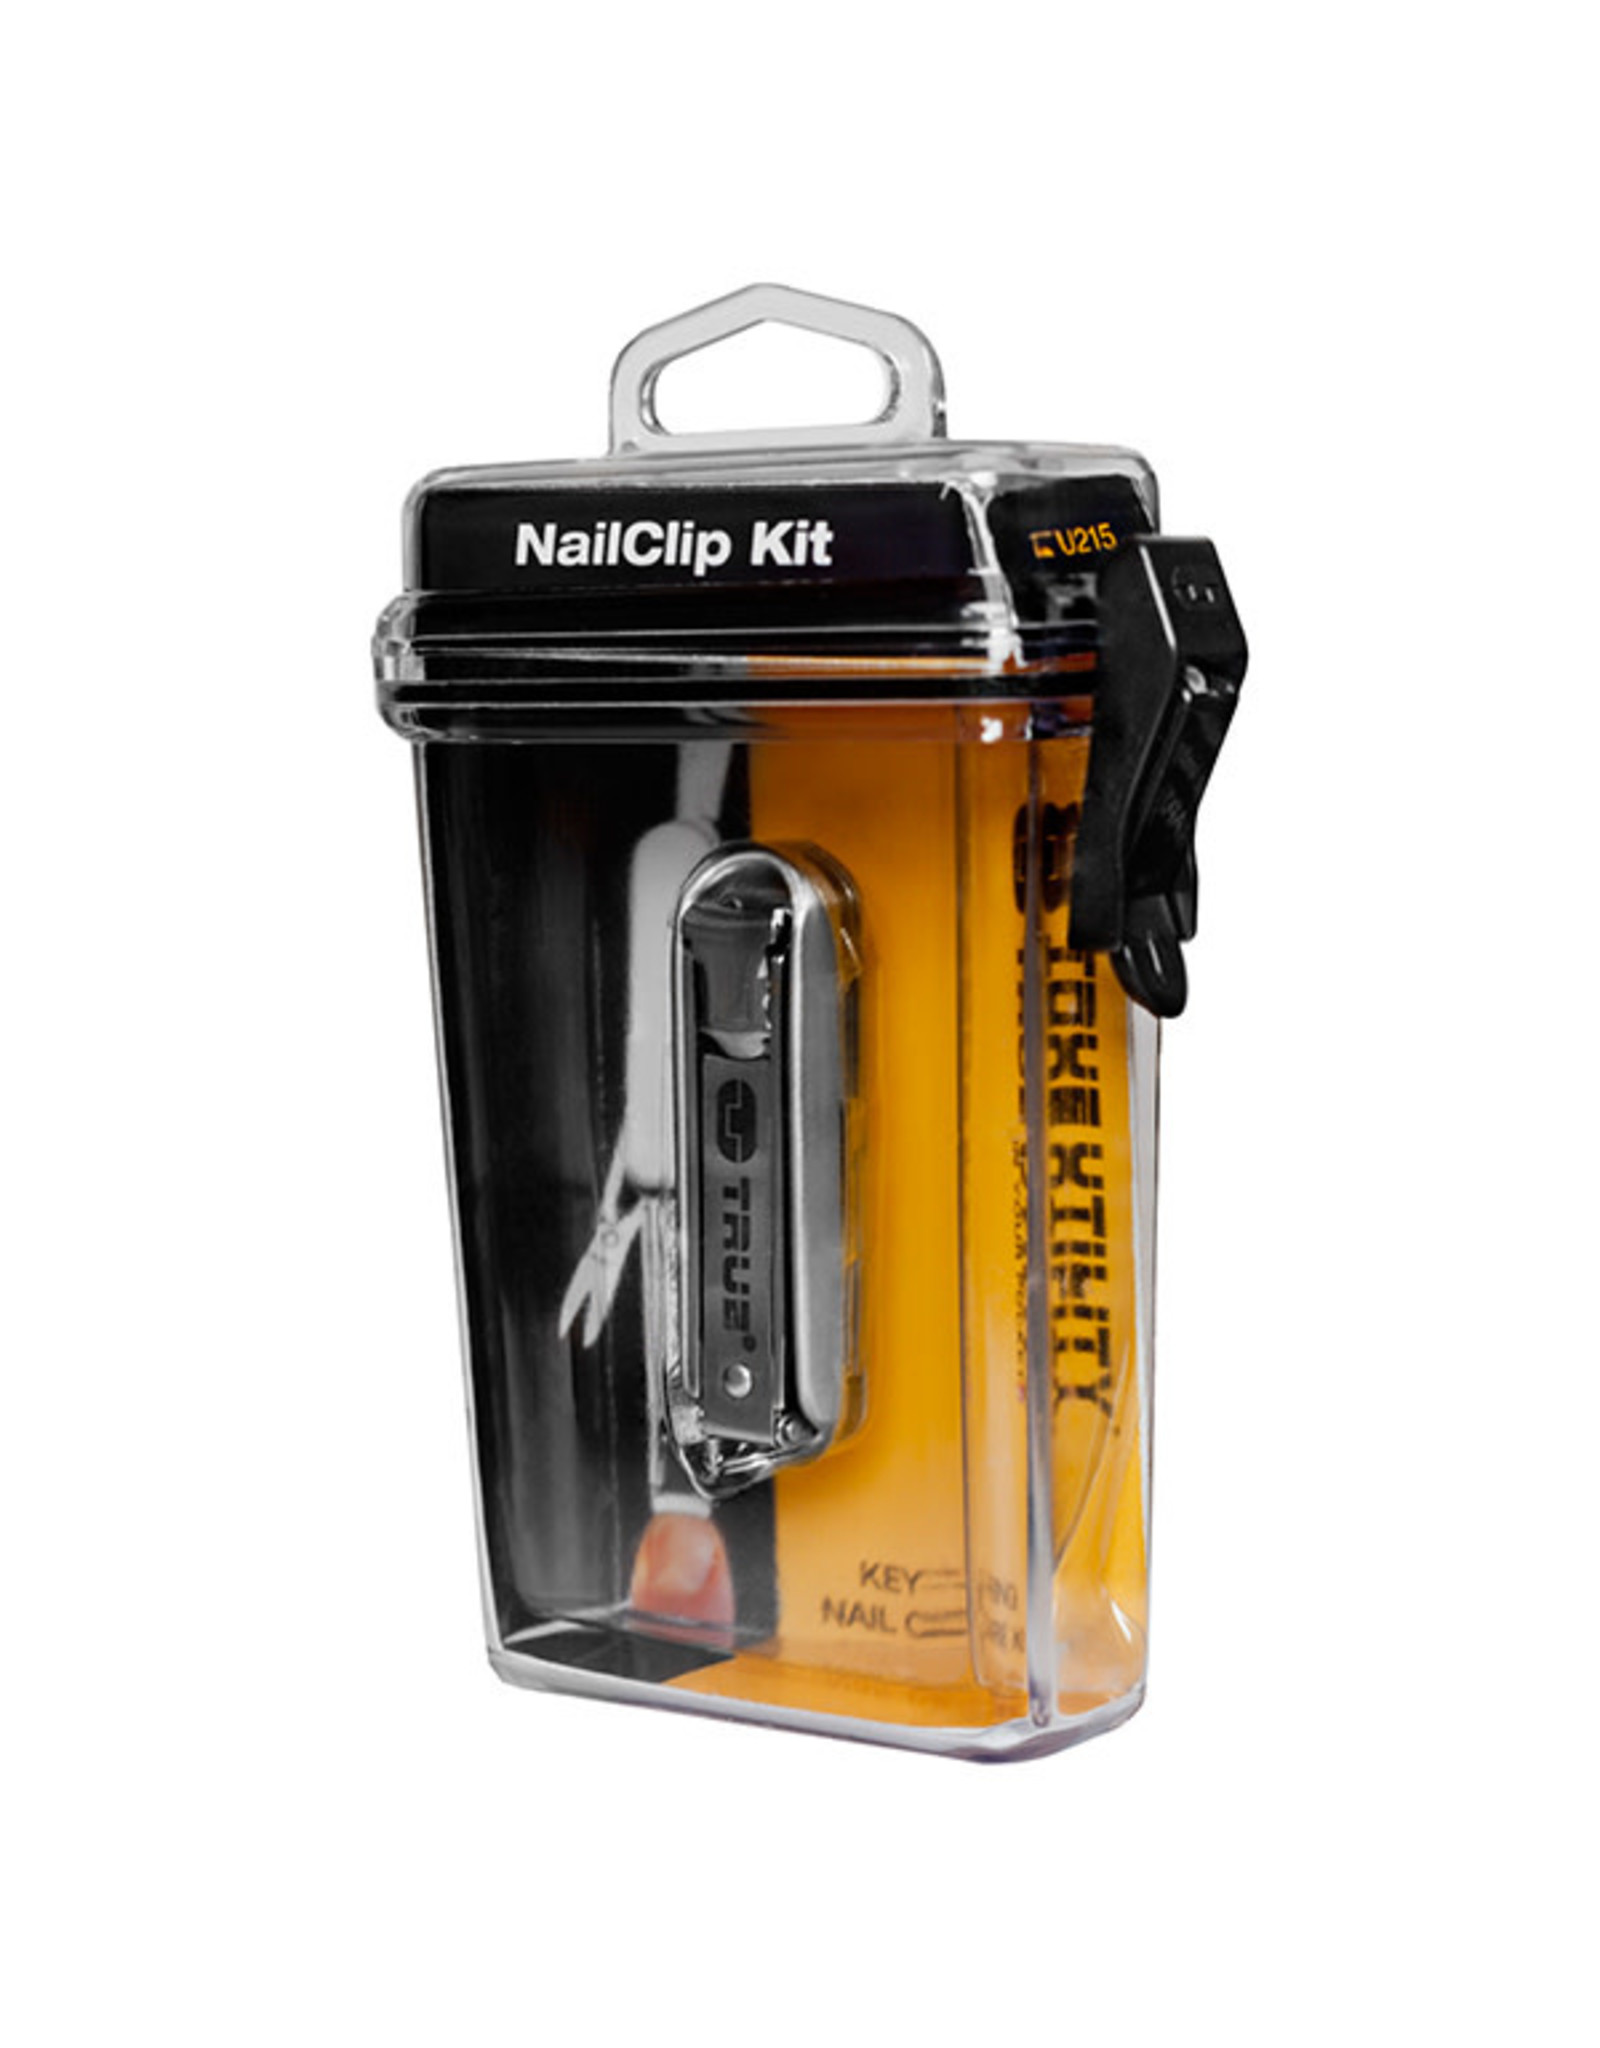 NailClip Kit